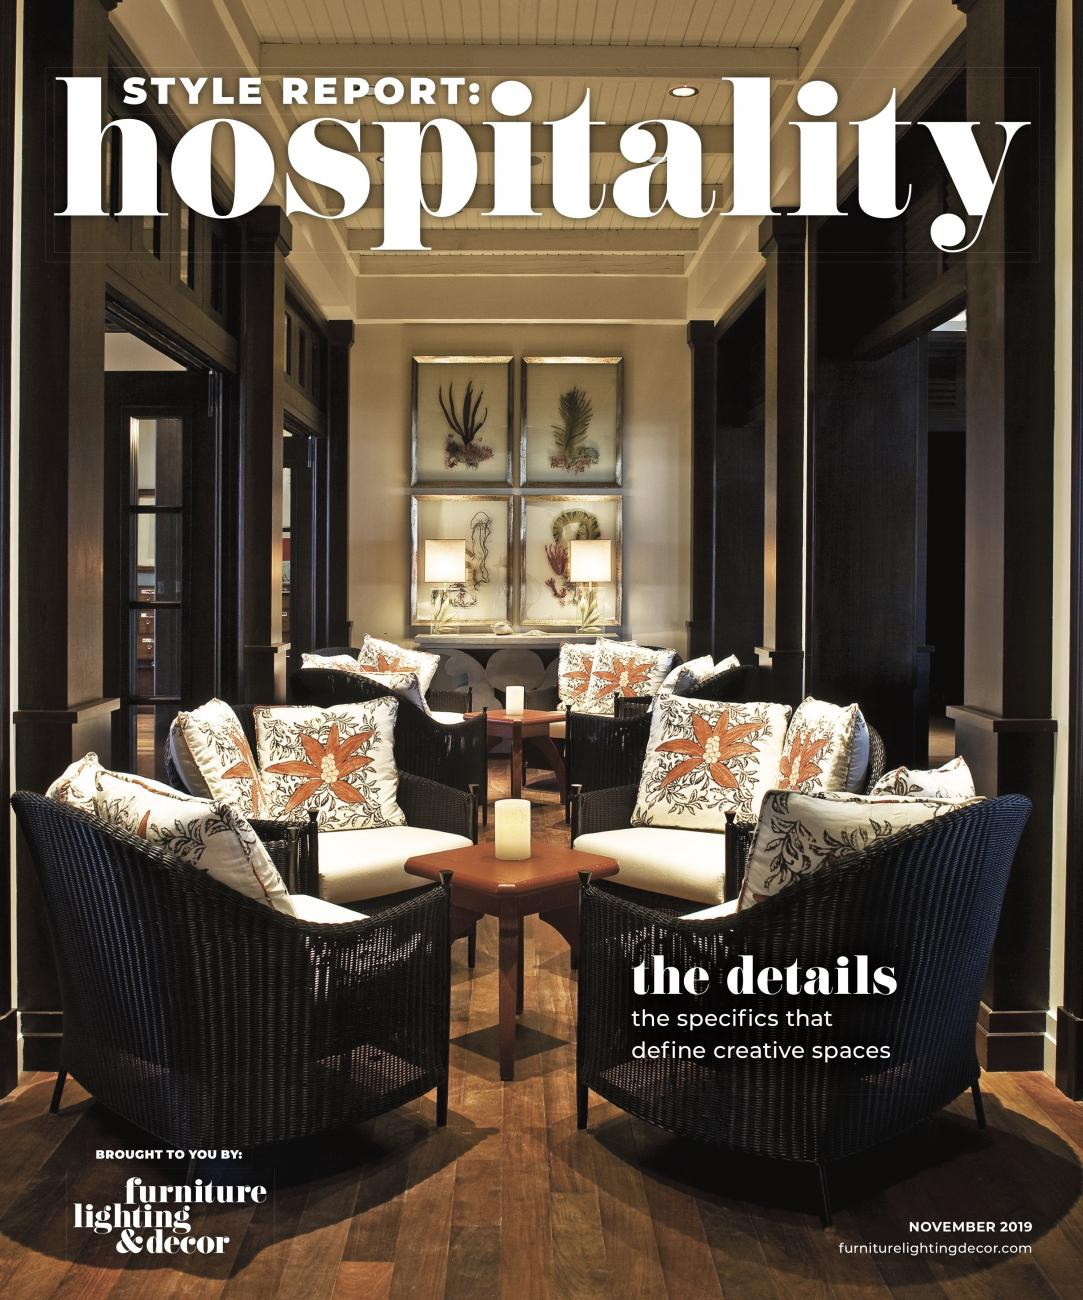 November 2019 Style Report: Hospitality